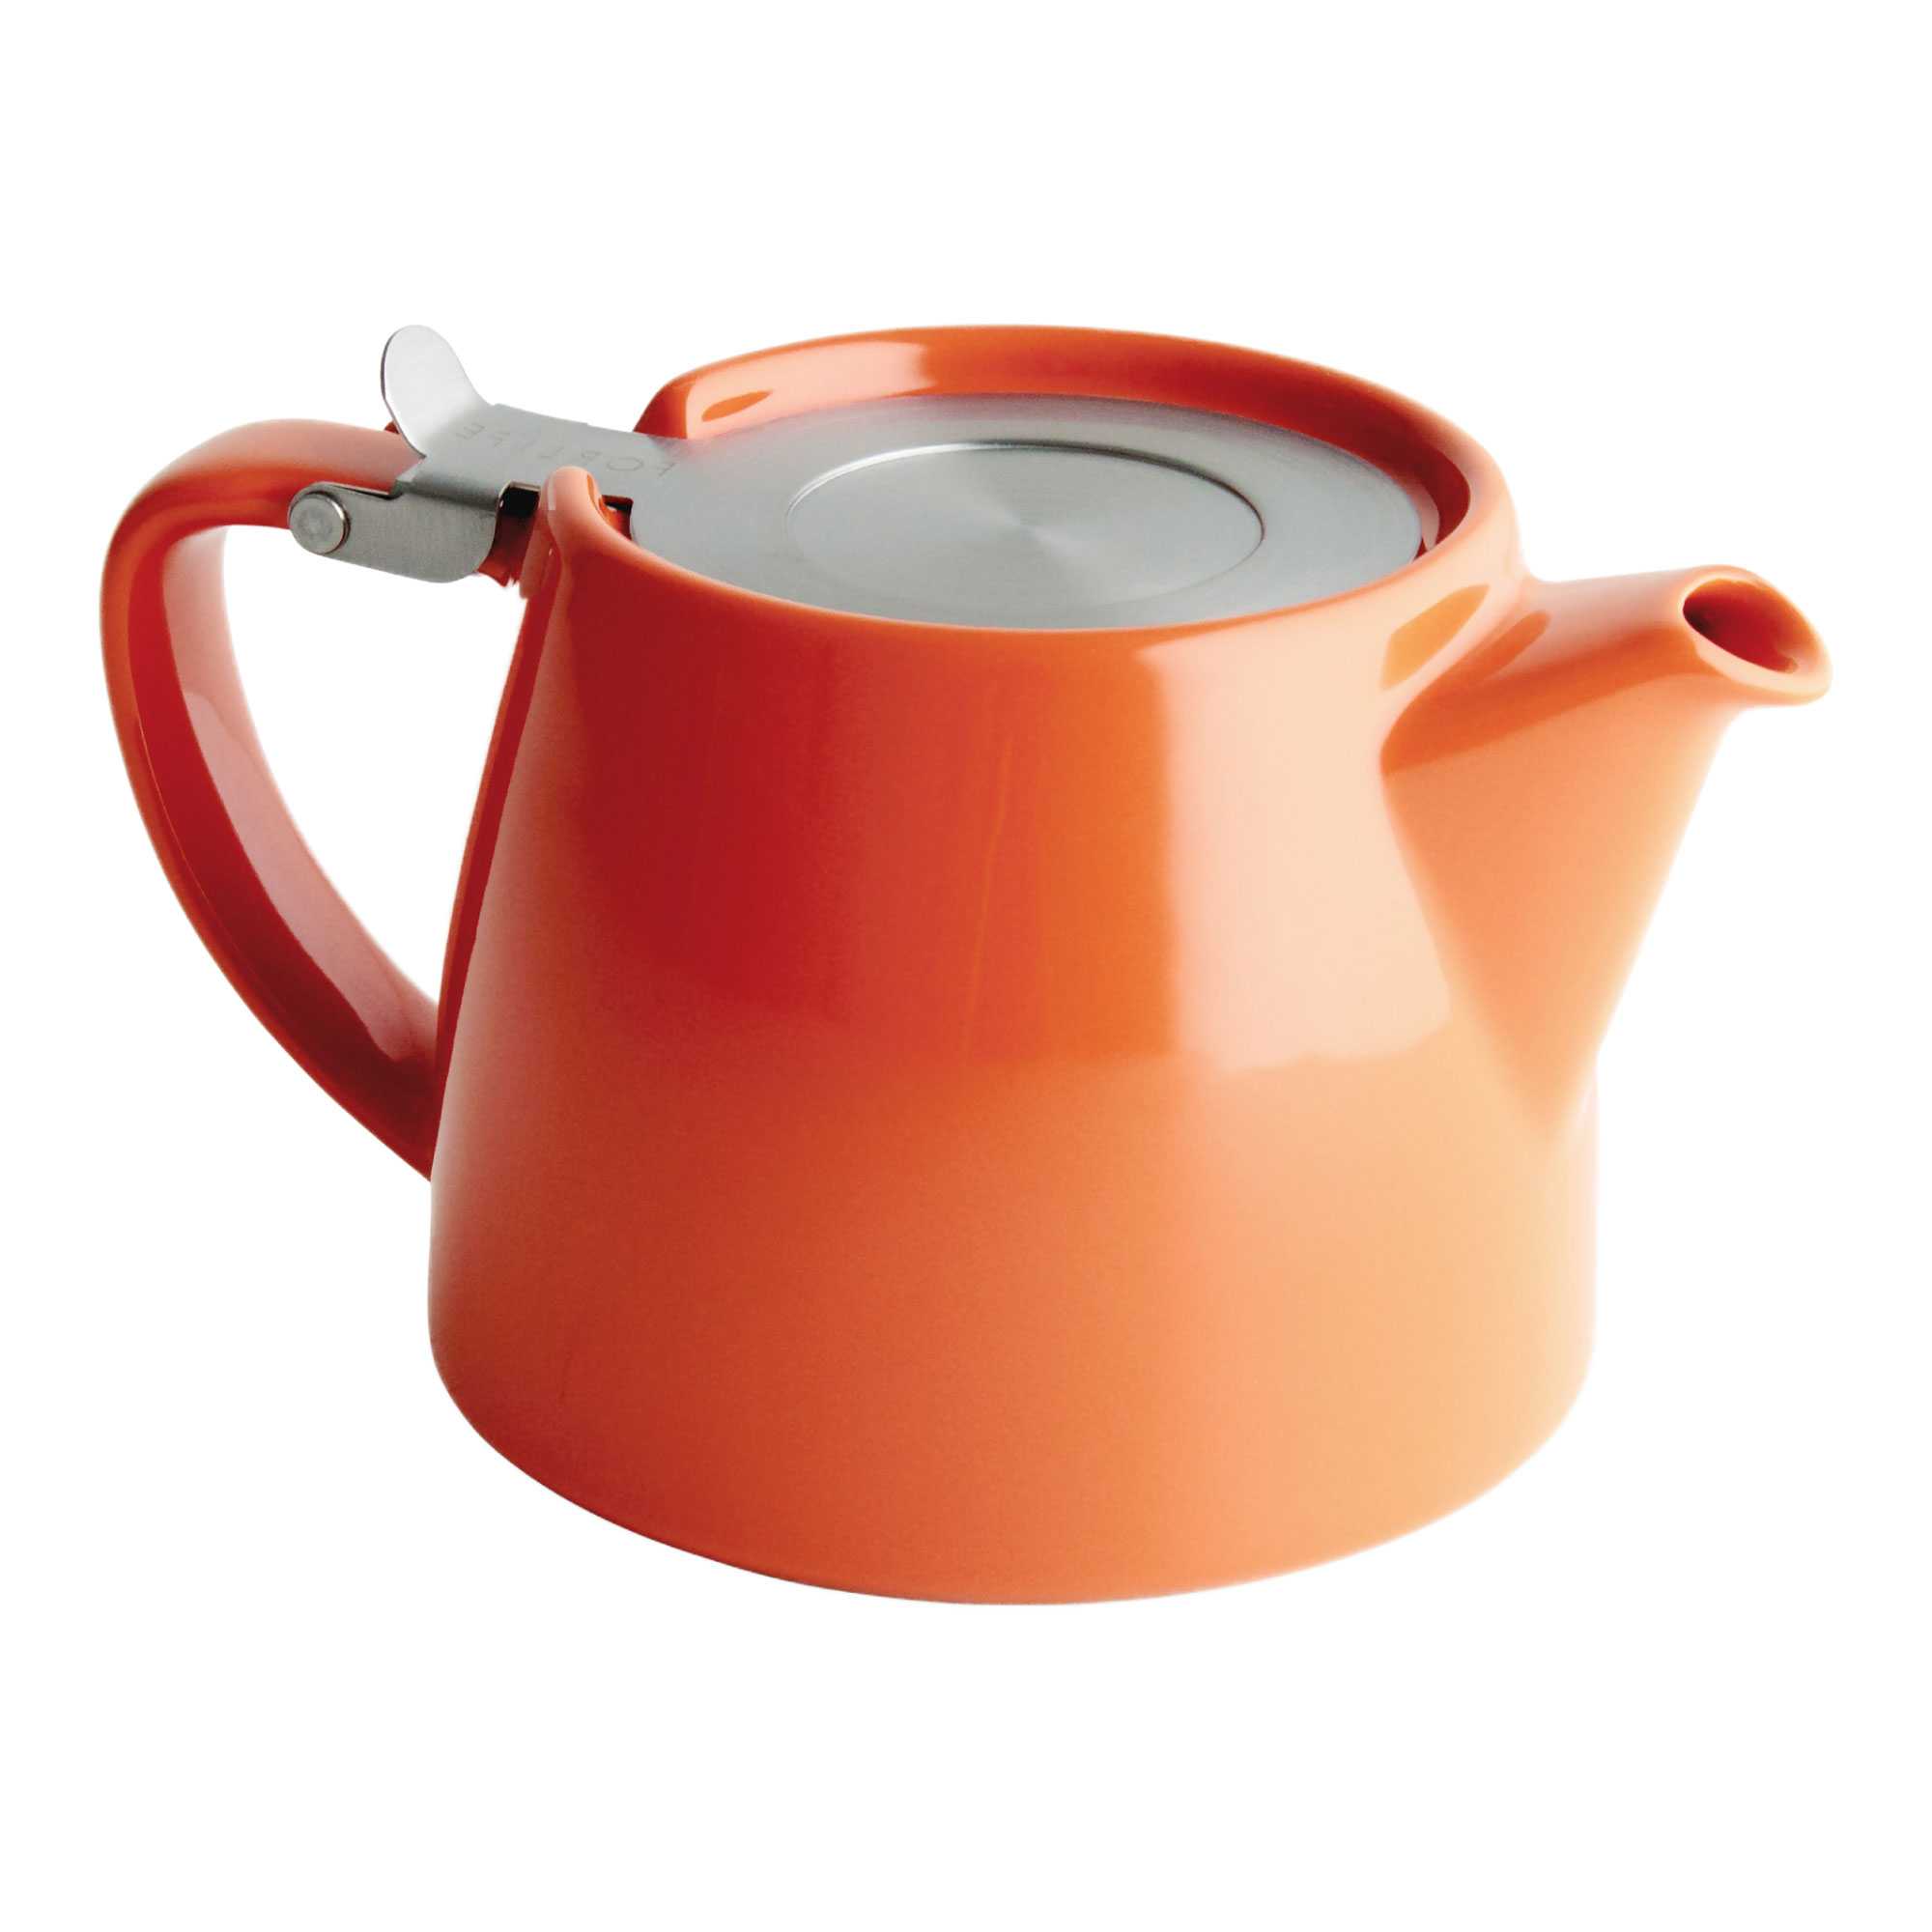 Carrot Tea Pot for Infusing Loose Leaf Tea